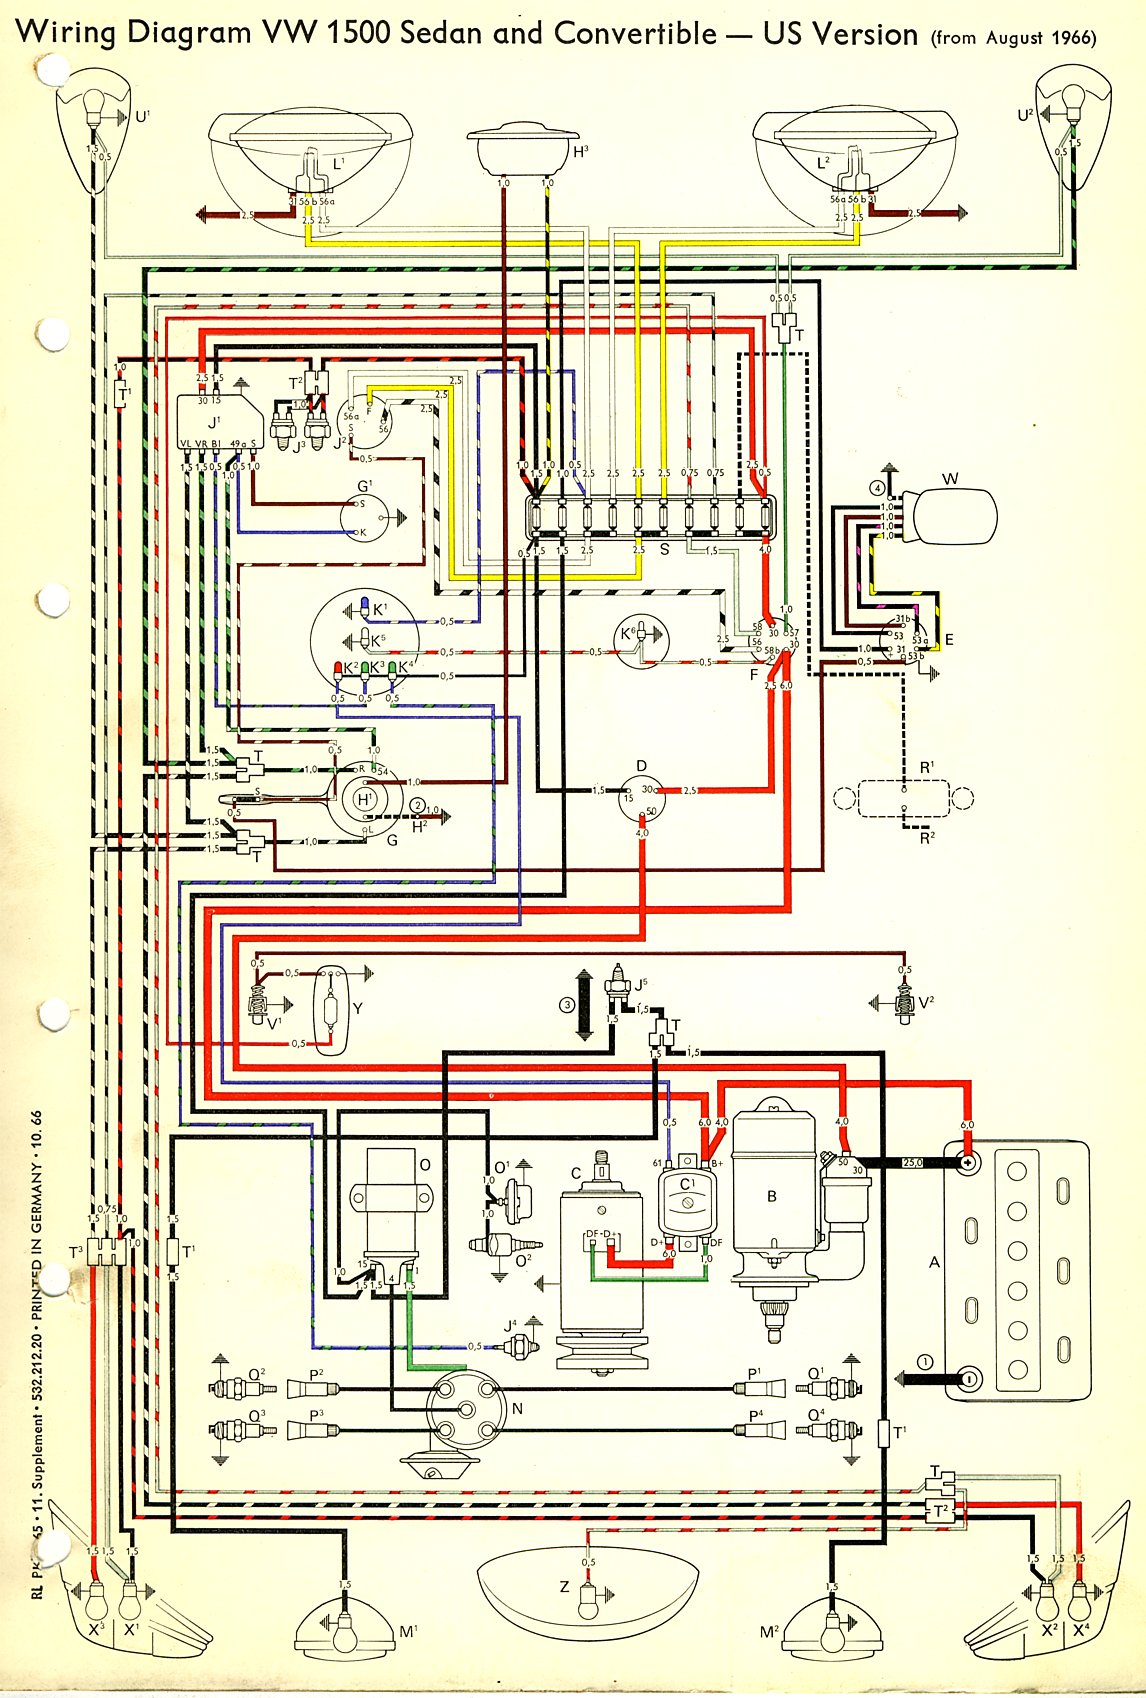 thesamba com type 1 wiring diagrams rh thesamba com 1966 vw beetle fuse box diagram 1966 vw bug fuse diagram